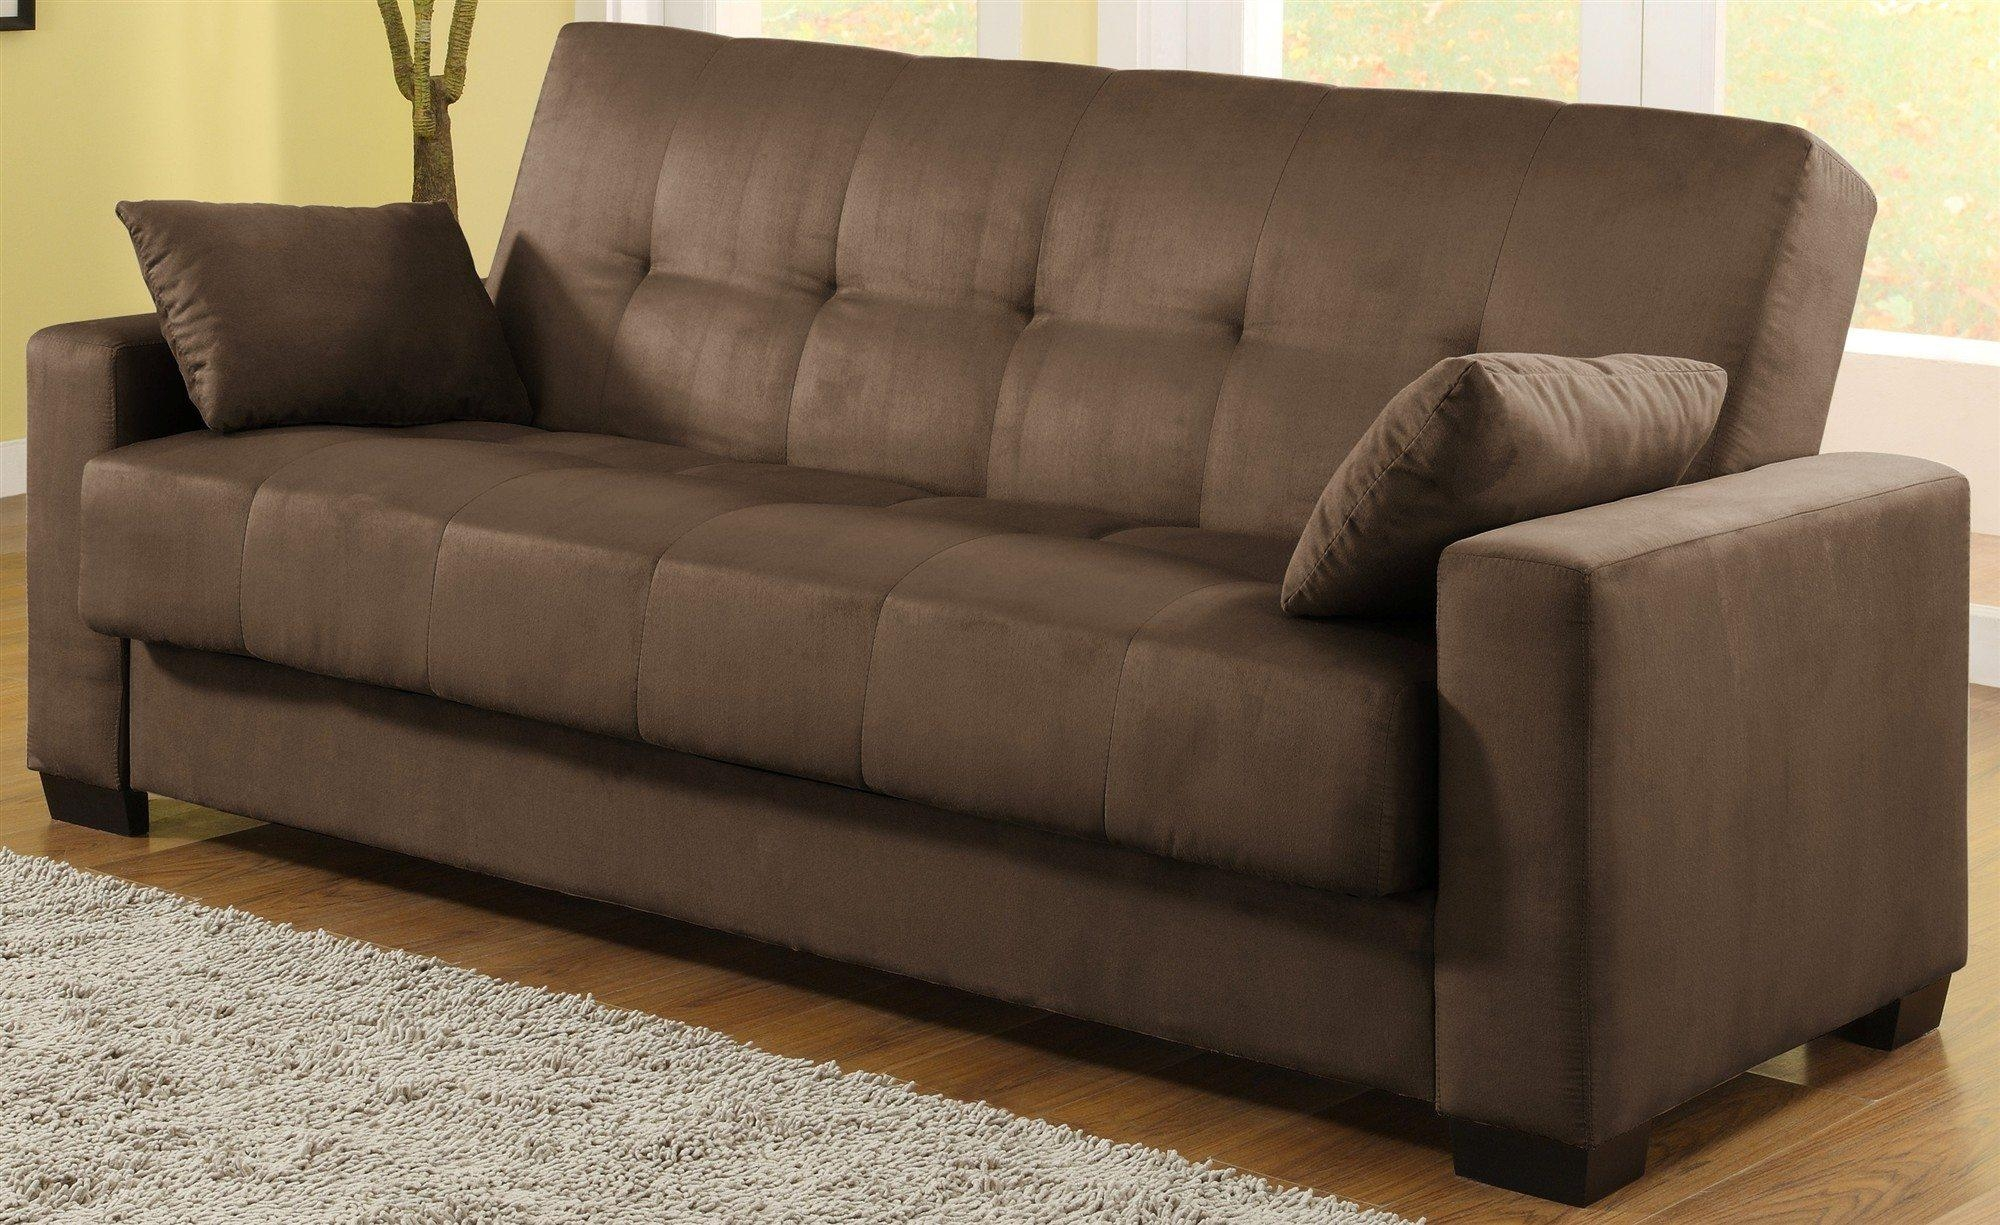 Trend Chai Microsuede Sofa Bed 94 With Additional Top Rated Sofa With Chai Microsuede Sofa Beds (View 7 of 20)